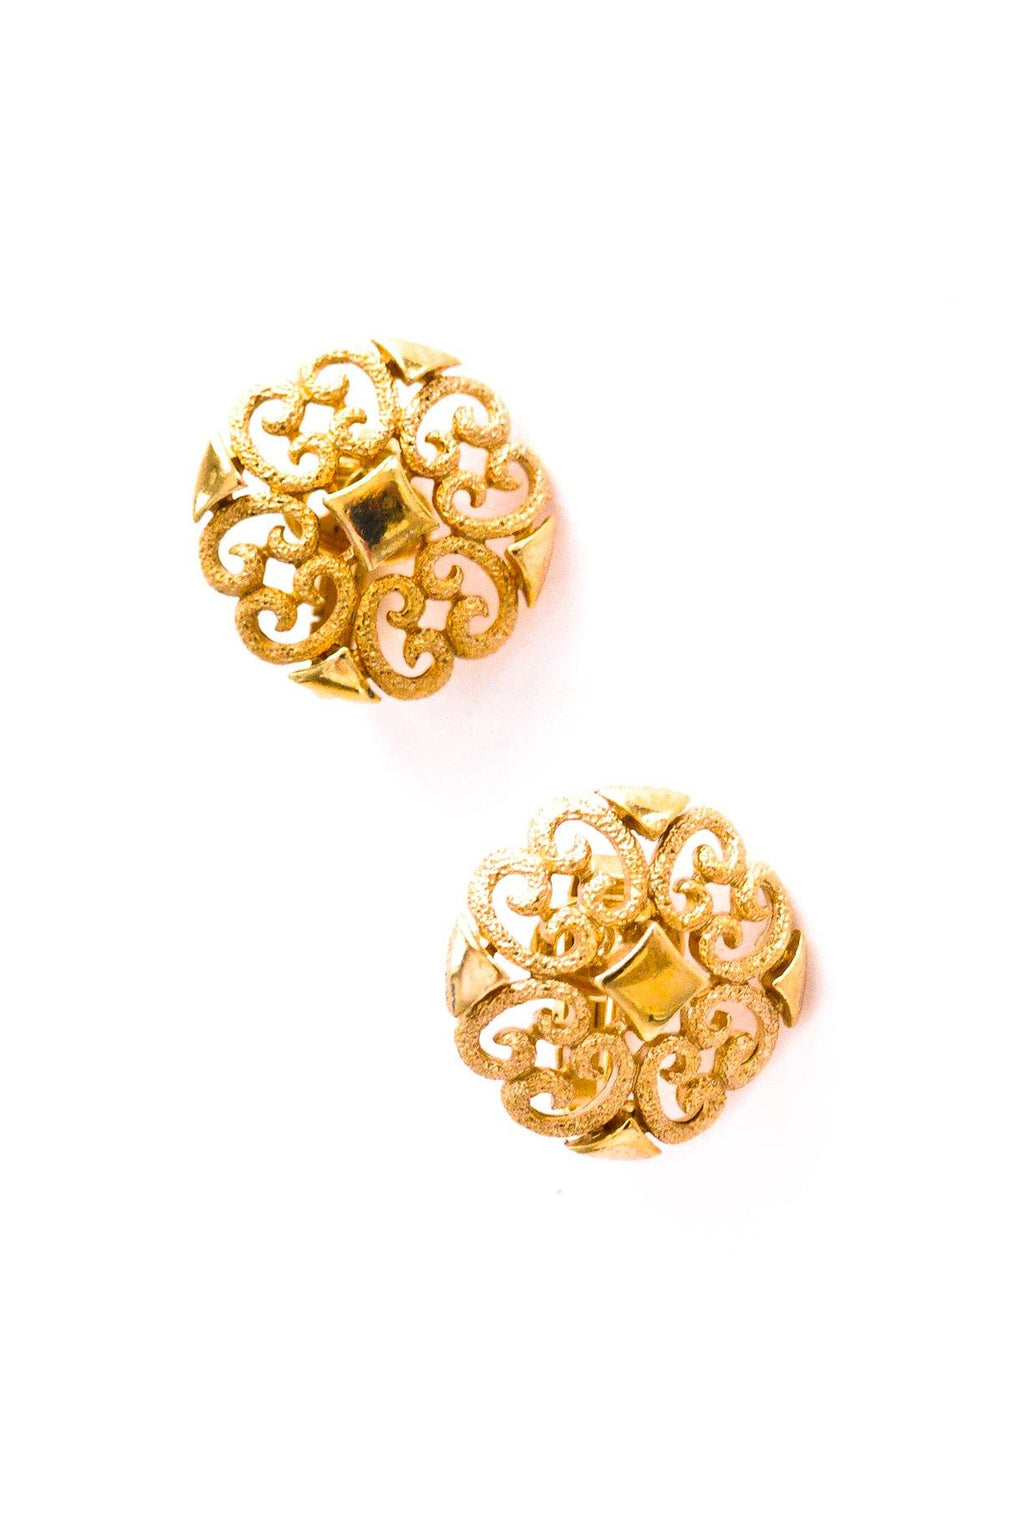 Round Filagree Clip-on Earrings